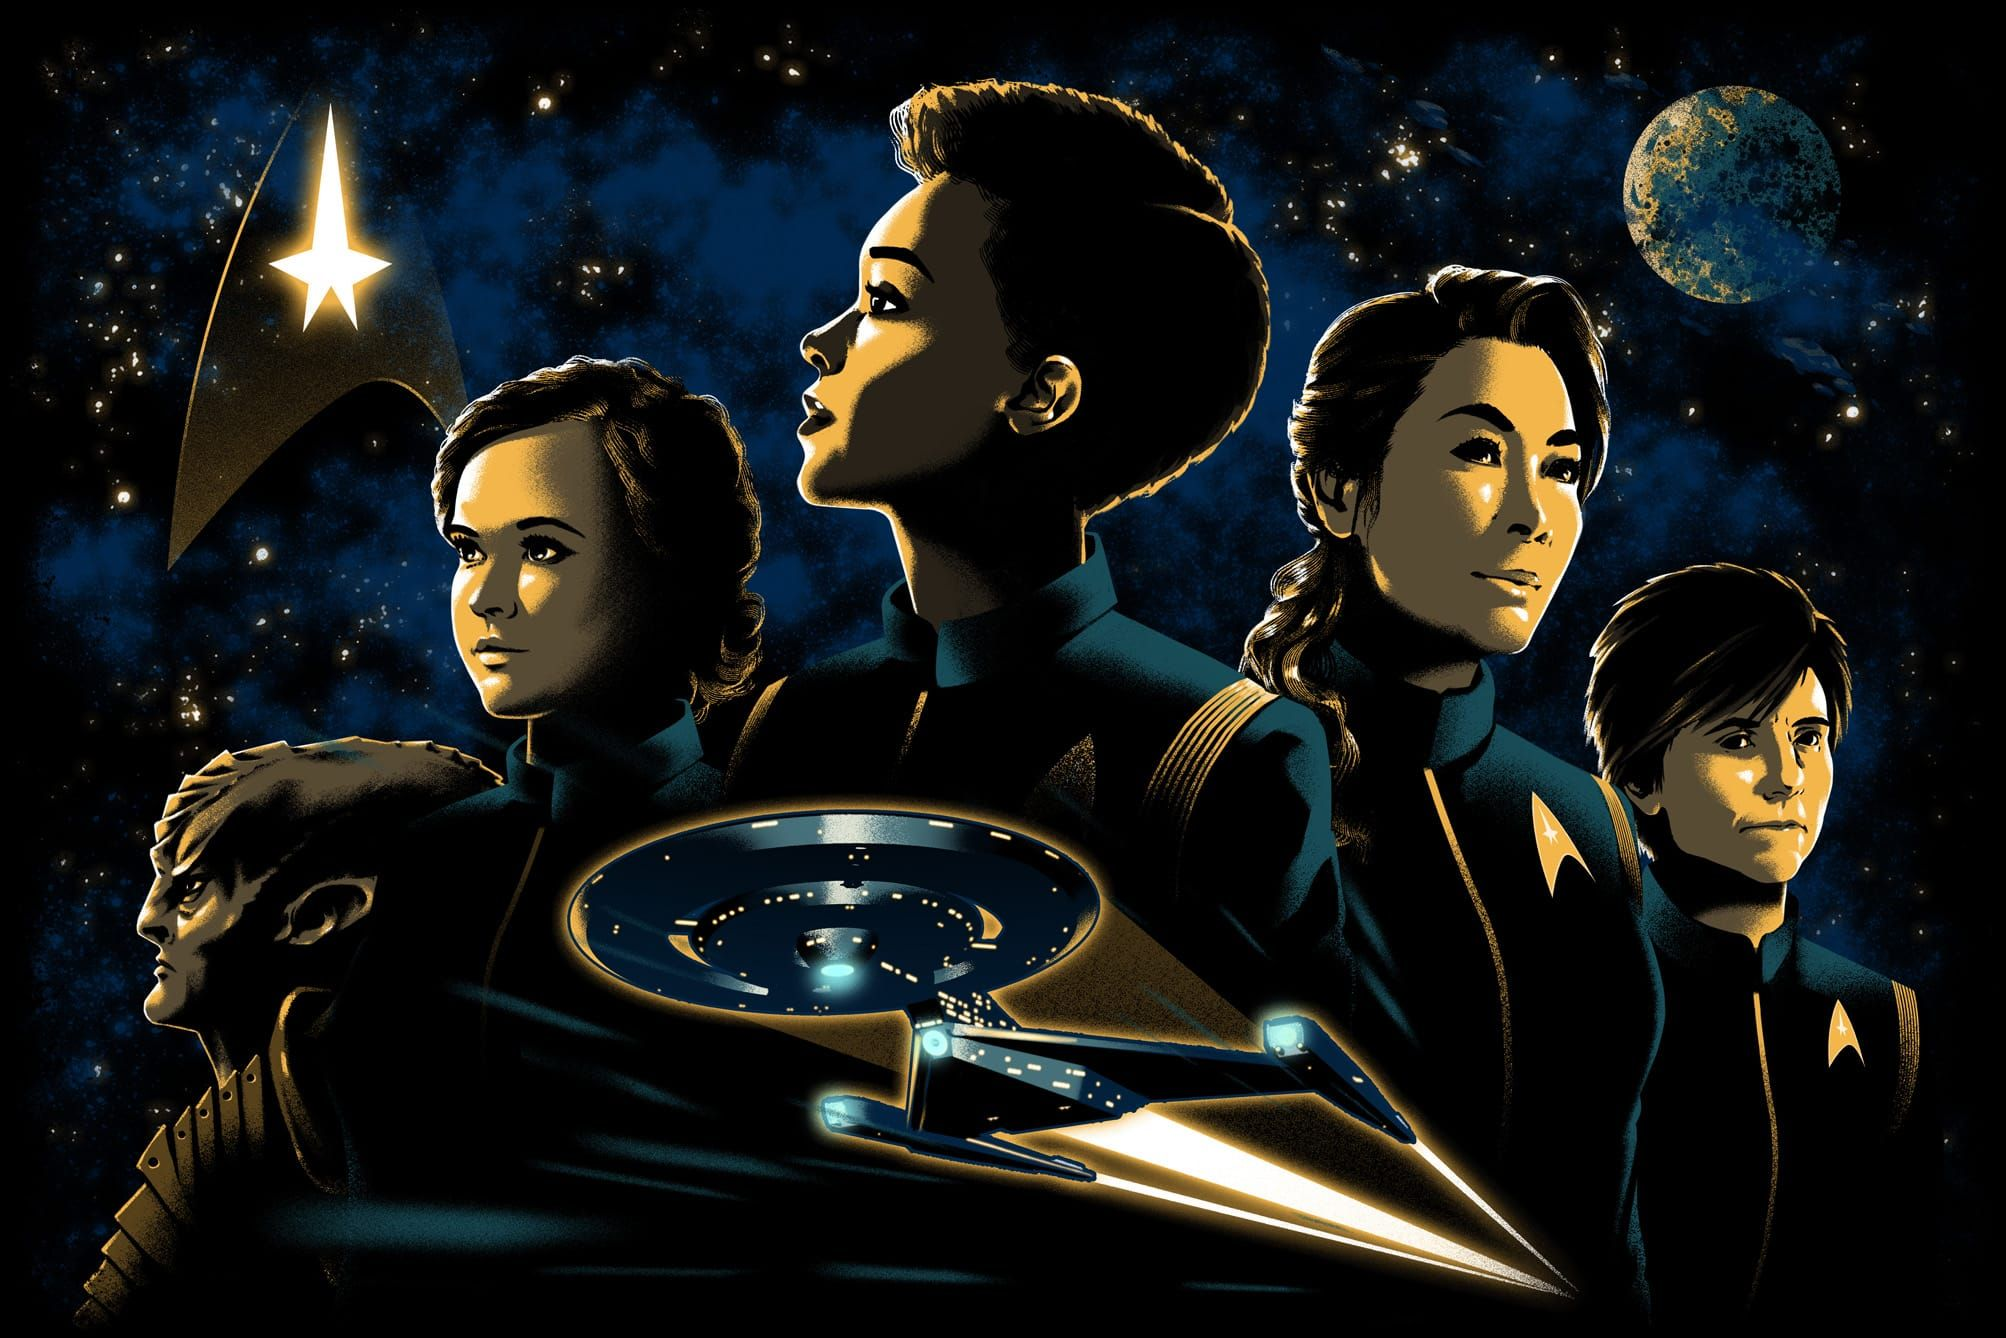 Paid Post By Cbs Women Drive The Action In Star Trek Discovery Star Trek Show Star Trek Star Trek Universe